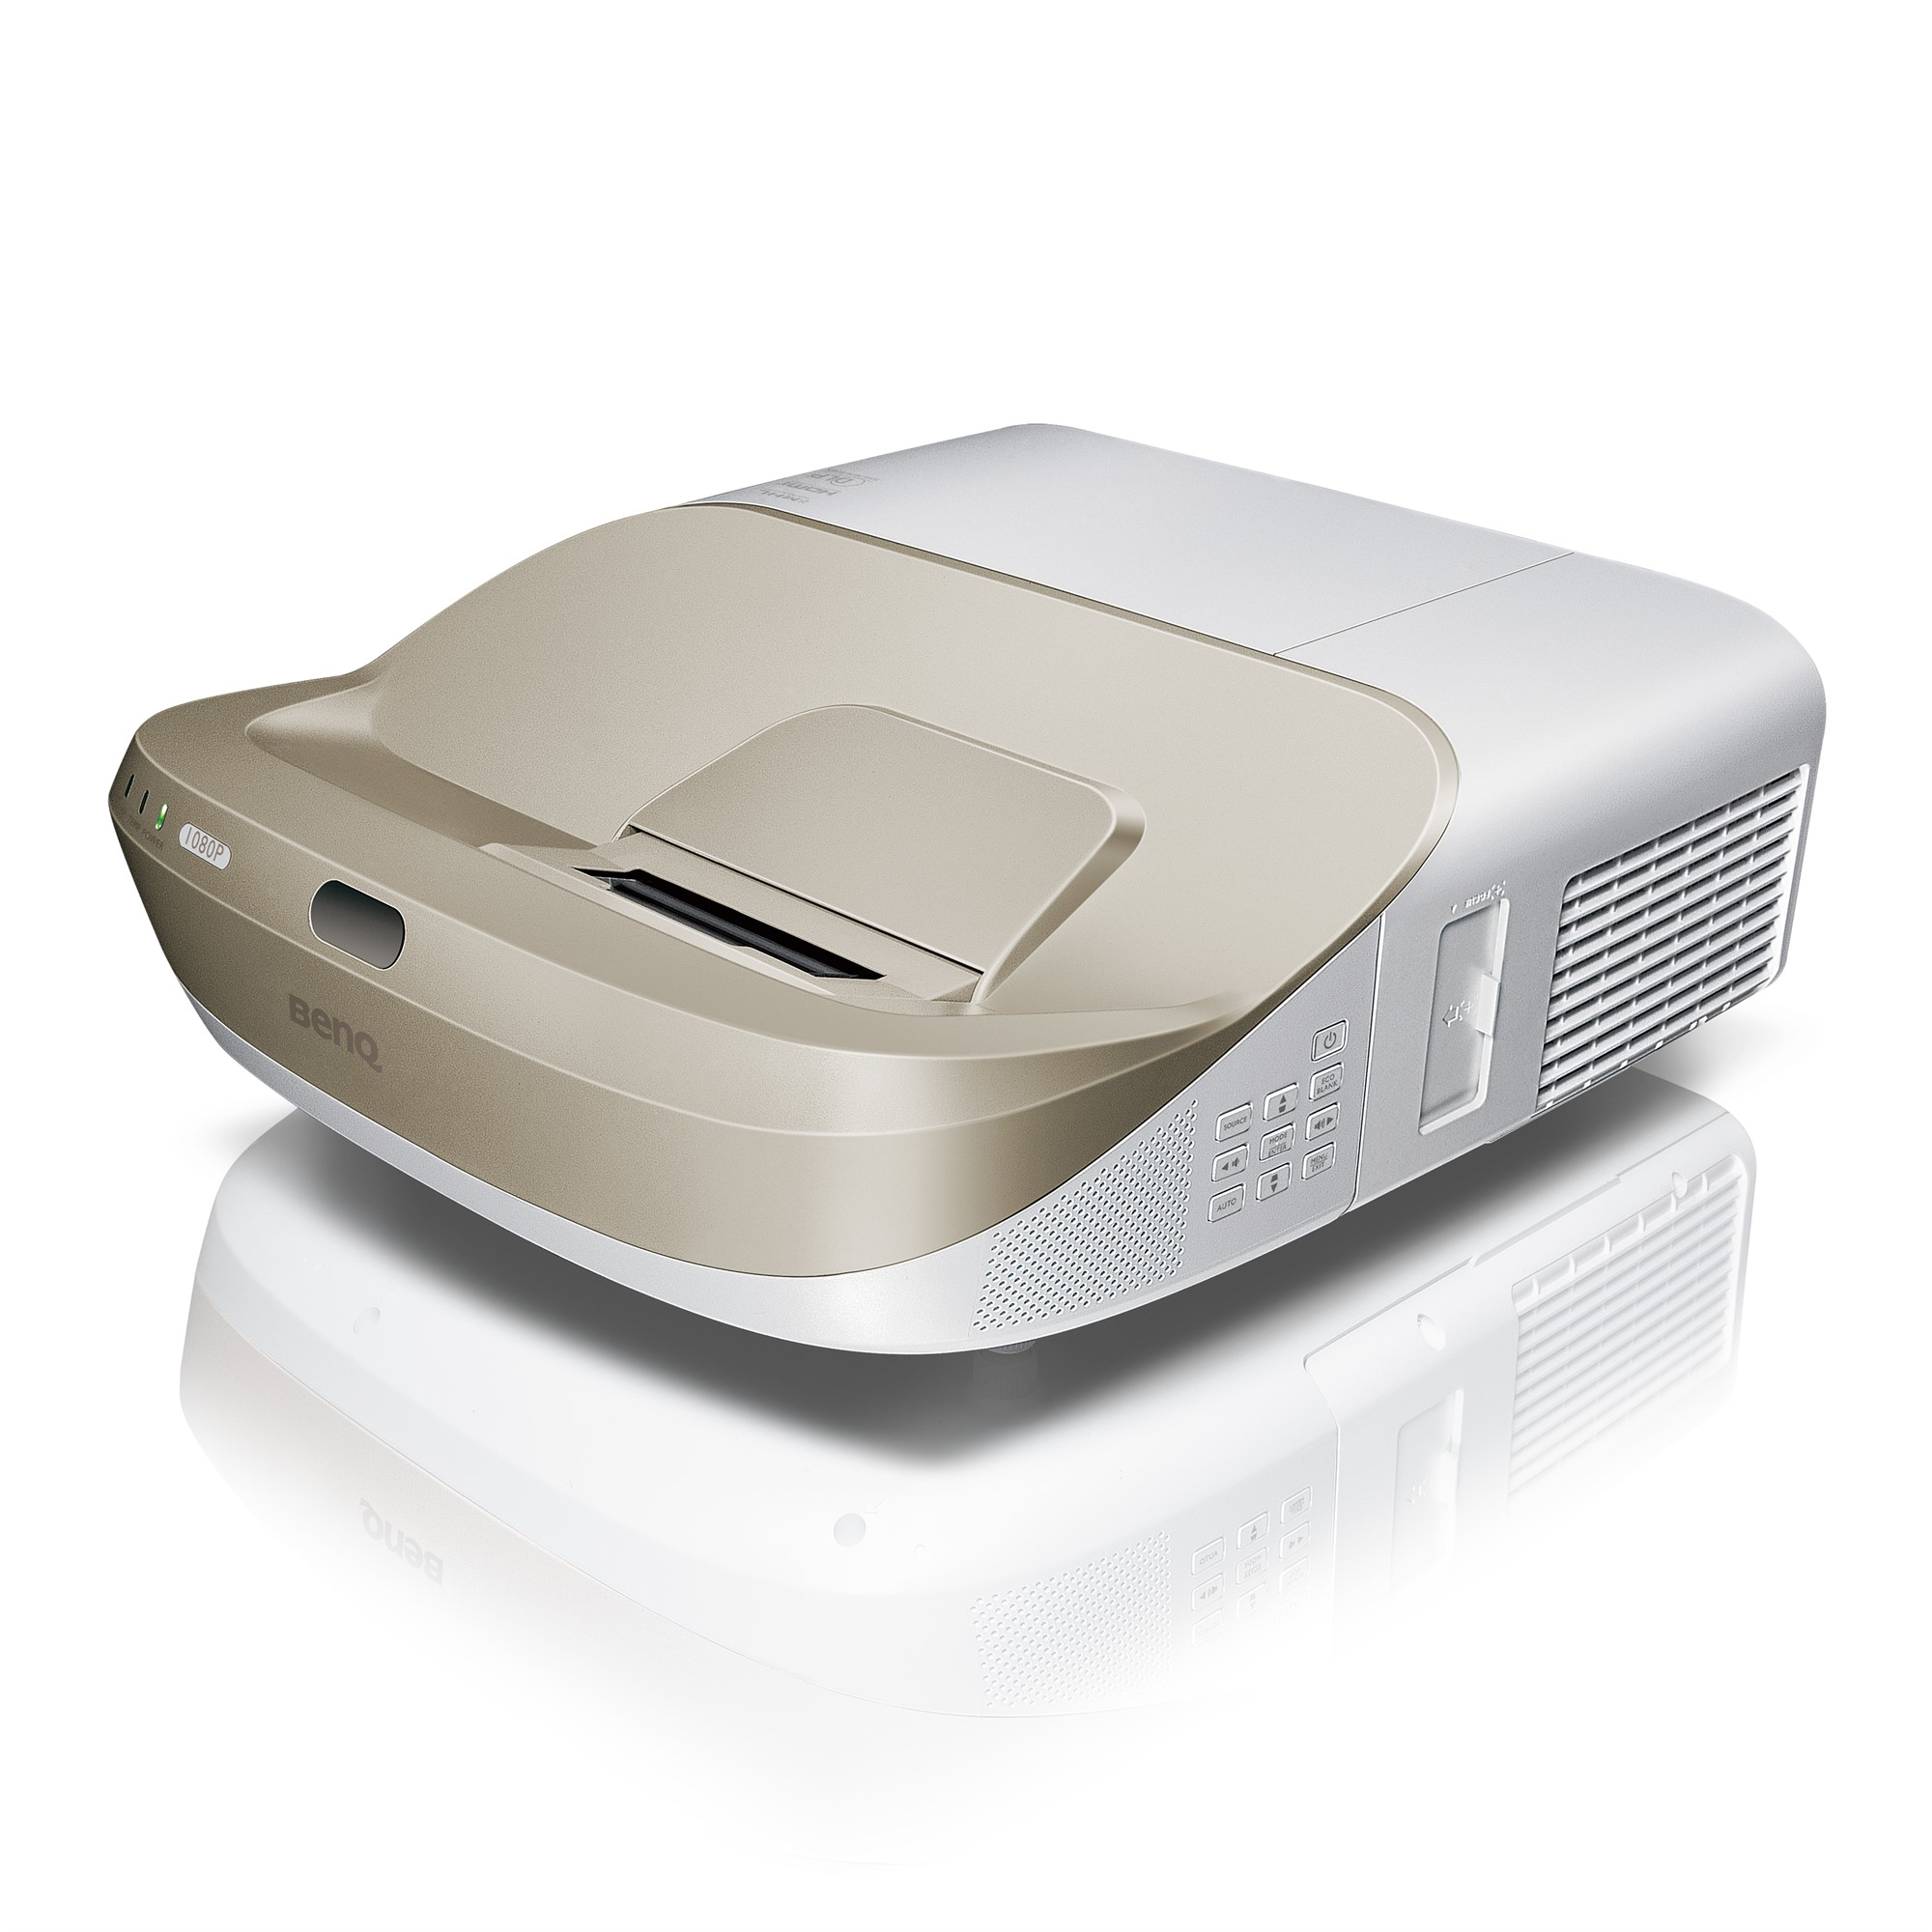 BENQ W1600UST DESKTOP PROJECTOR 3300ANSI LUMENS 1080P (1920X1080) GOLD, WHITE DATA